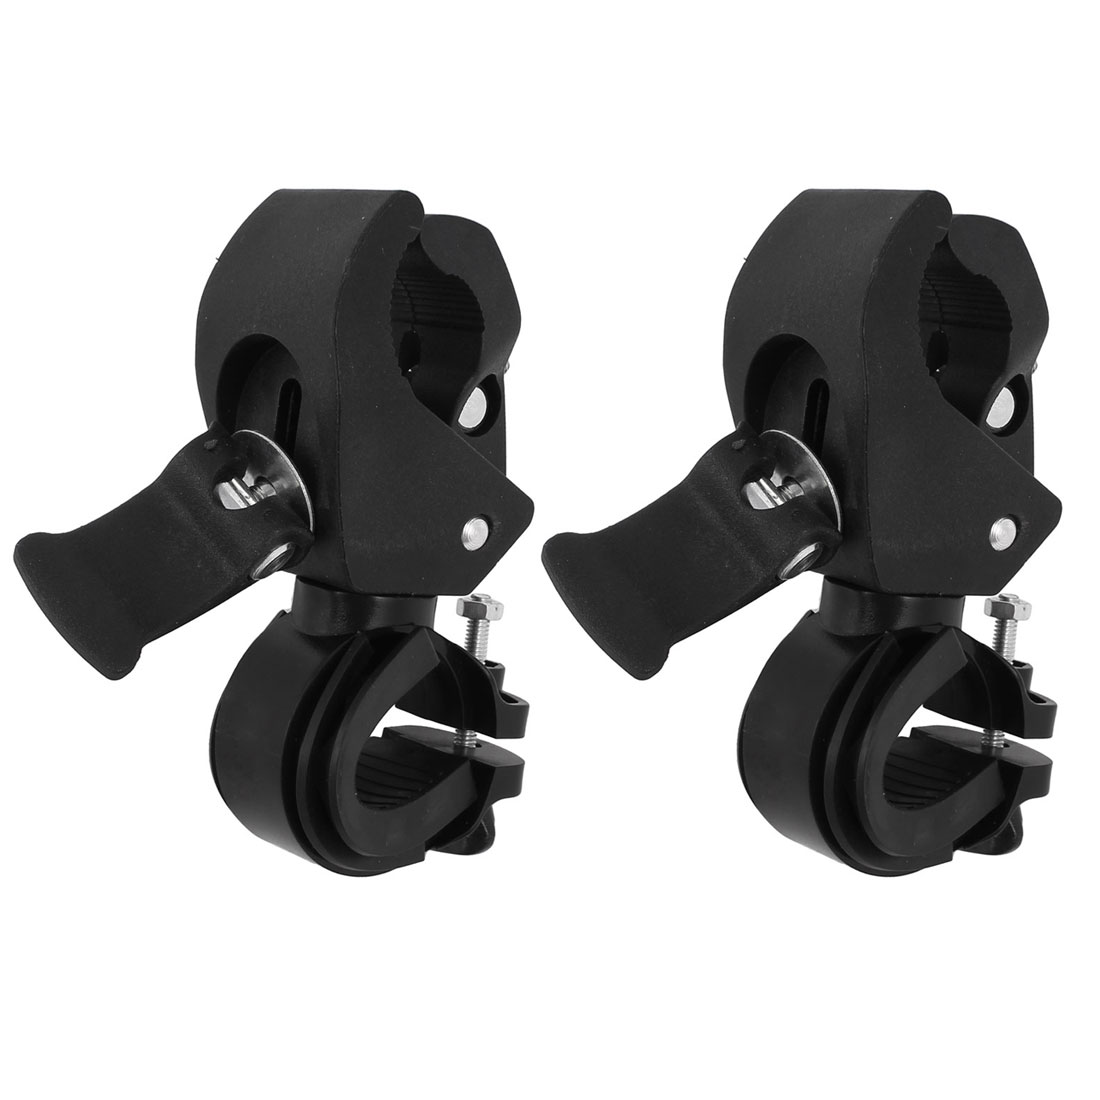 Plastic Outdoor Cycling Adjustable Flashlight Lamp Holder Clamp Clip Bracket Black 2 Pcs